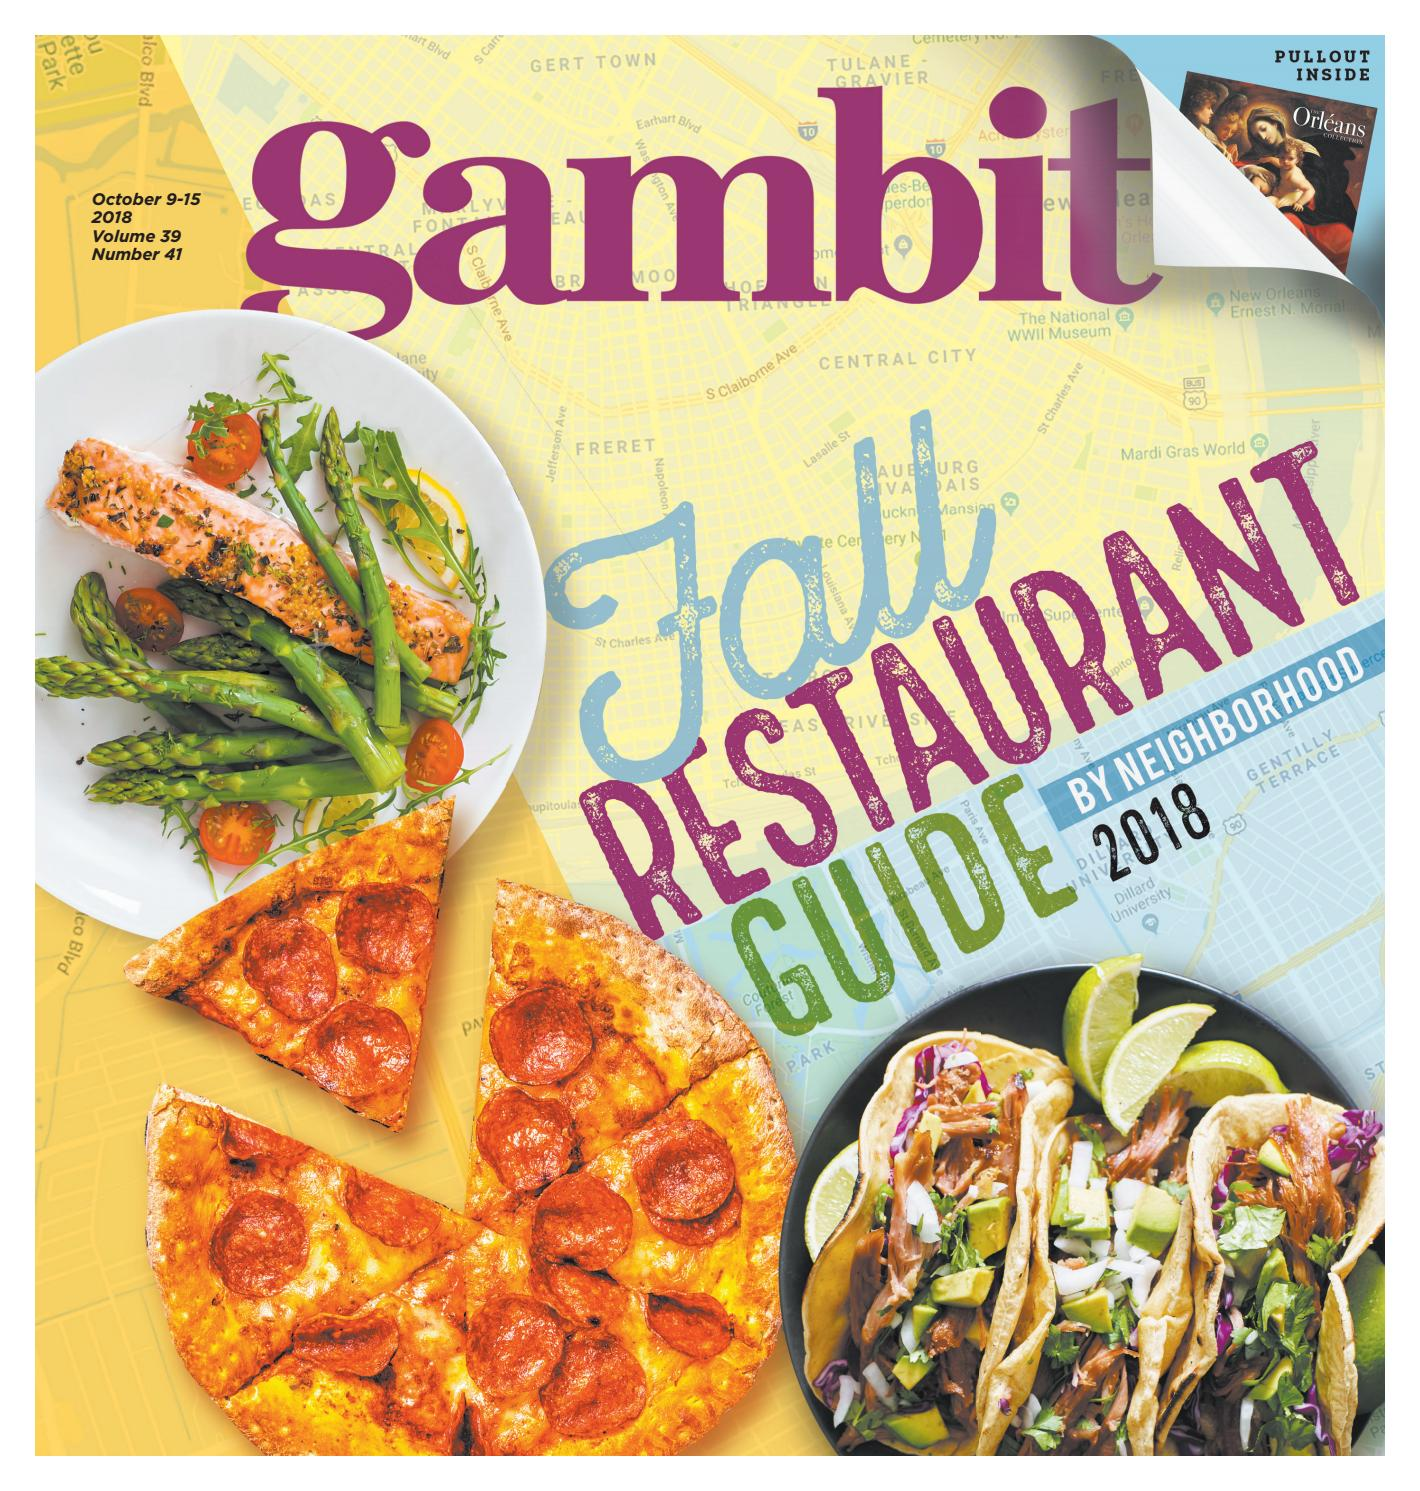 Alta Cucina Restaurant Johnson City Tn Gambit S Digital Edition Fall Restaurant Guide By Neighborhood